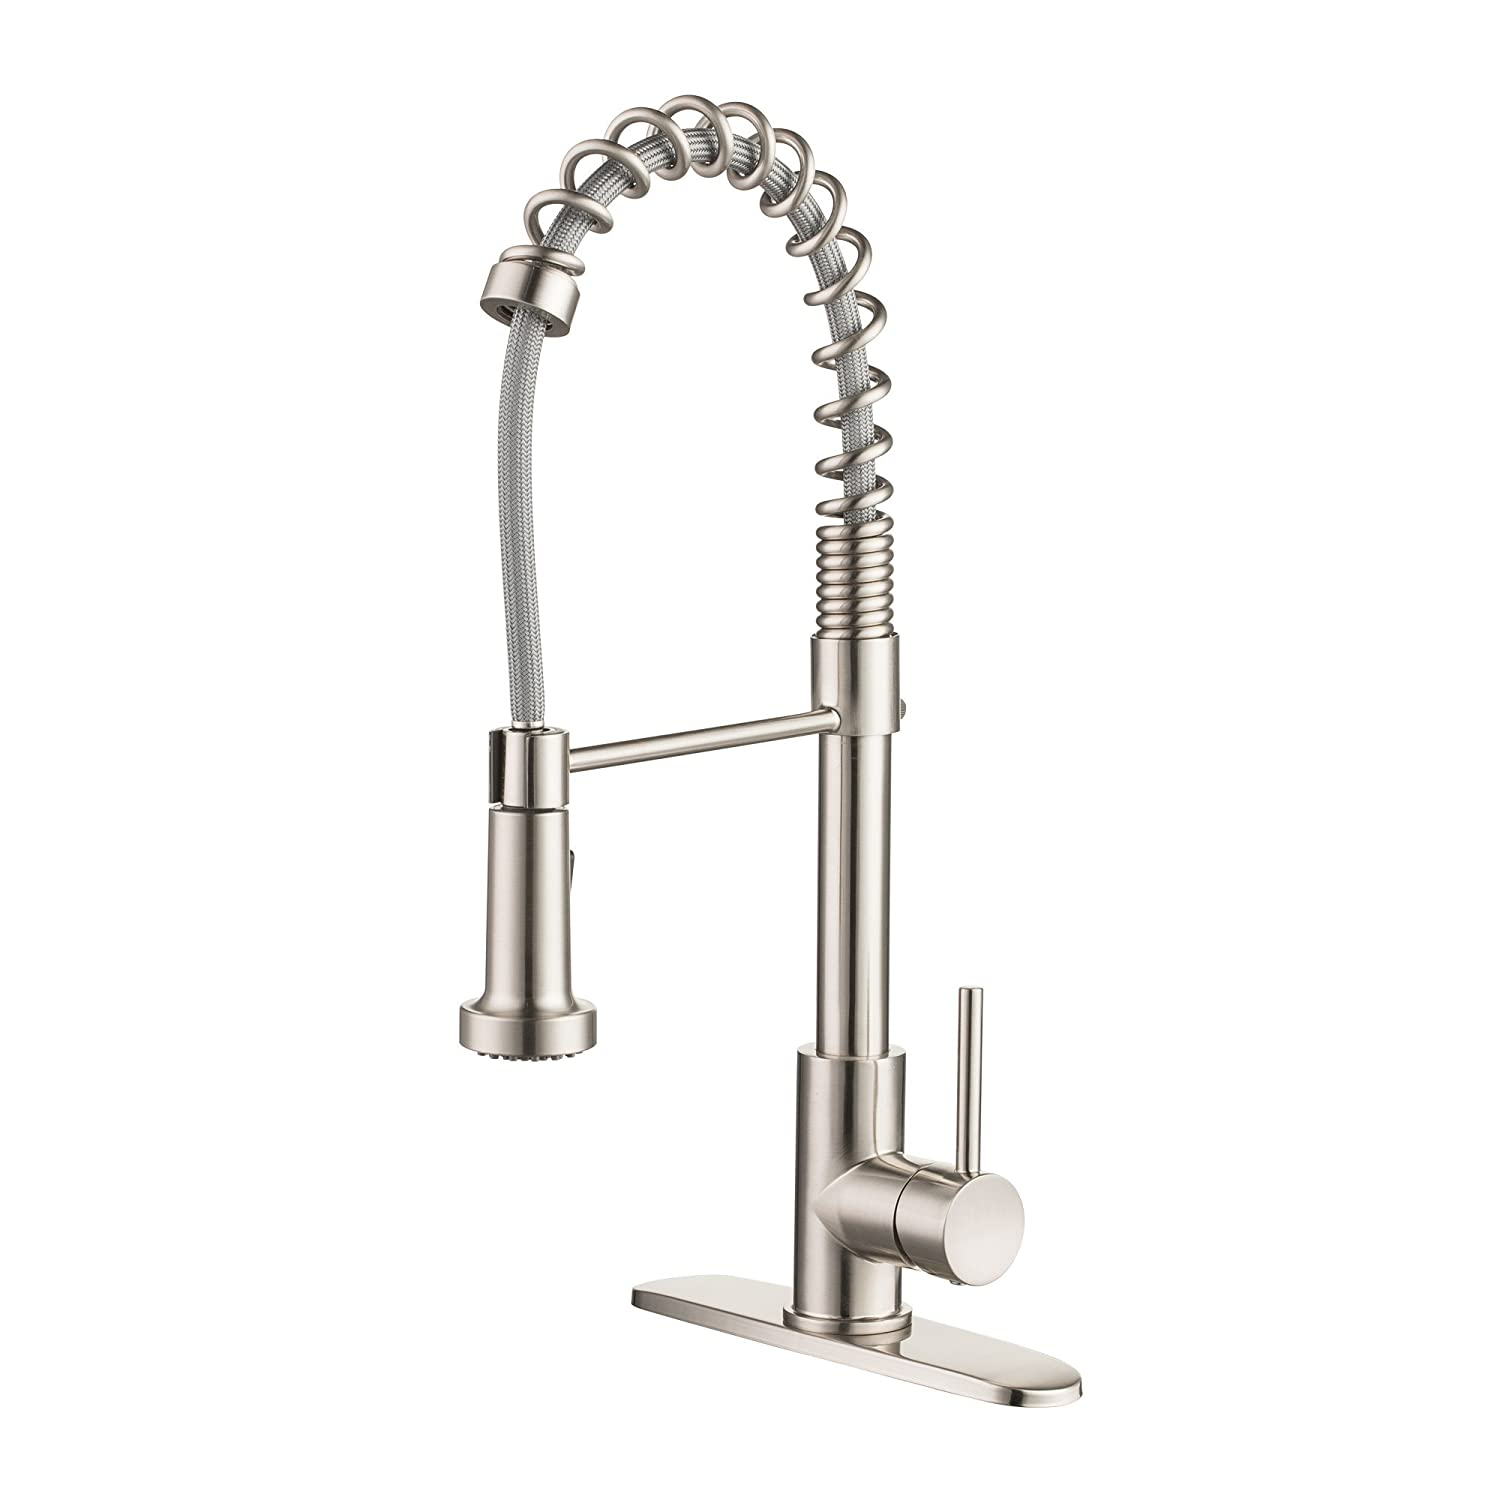 Enzo Rodi Modern Commercial Spring High-arc Lead-free Brass Pull-down Kitchen Sink Faucet with Pull-out Sprayer, Stainless Steel, ERF7358392AP-10